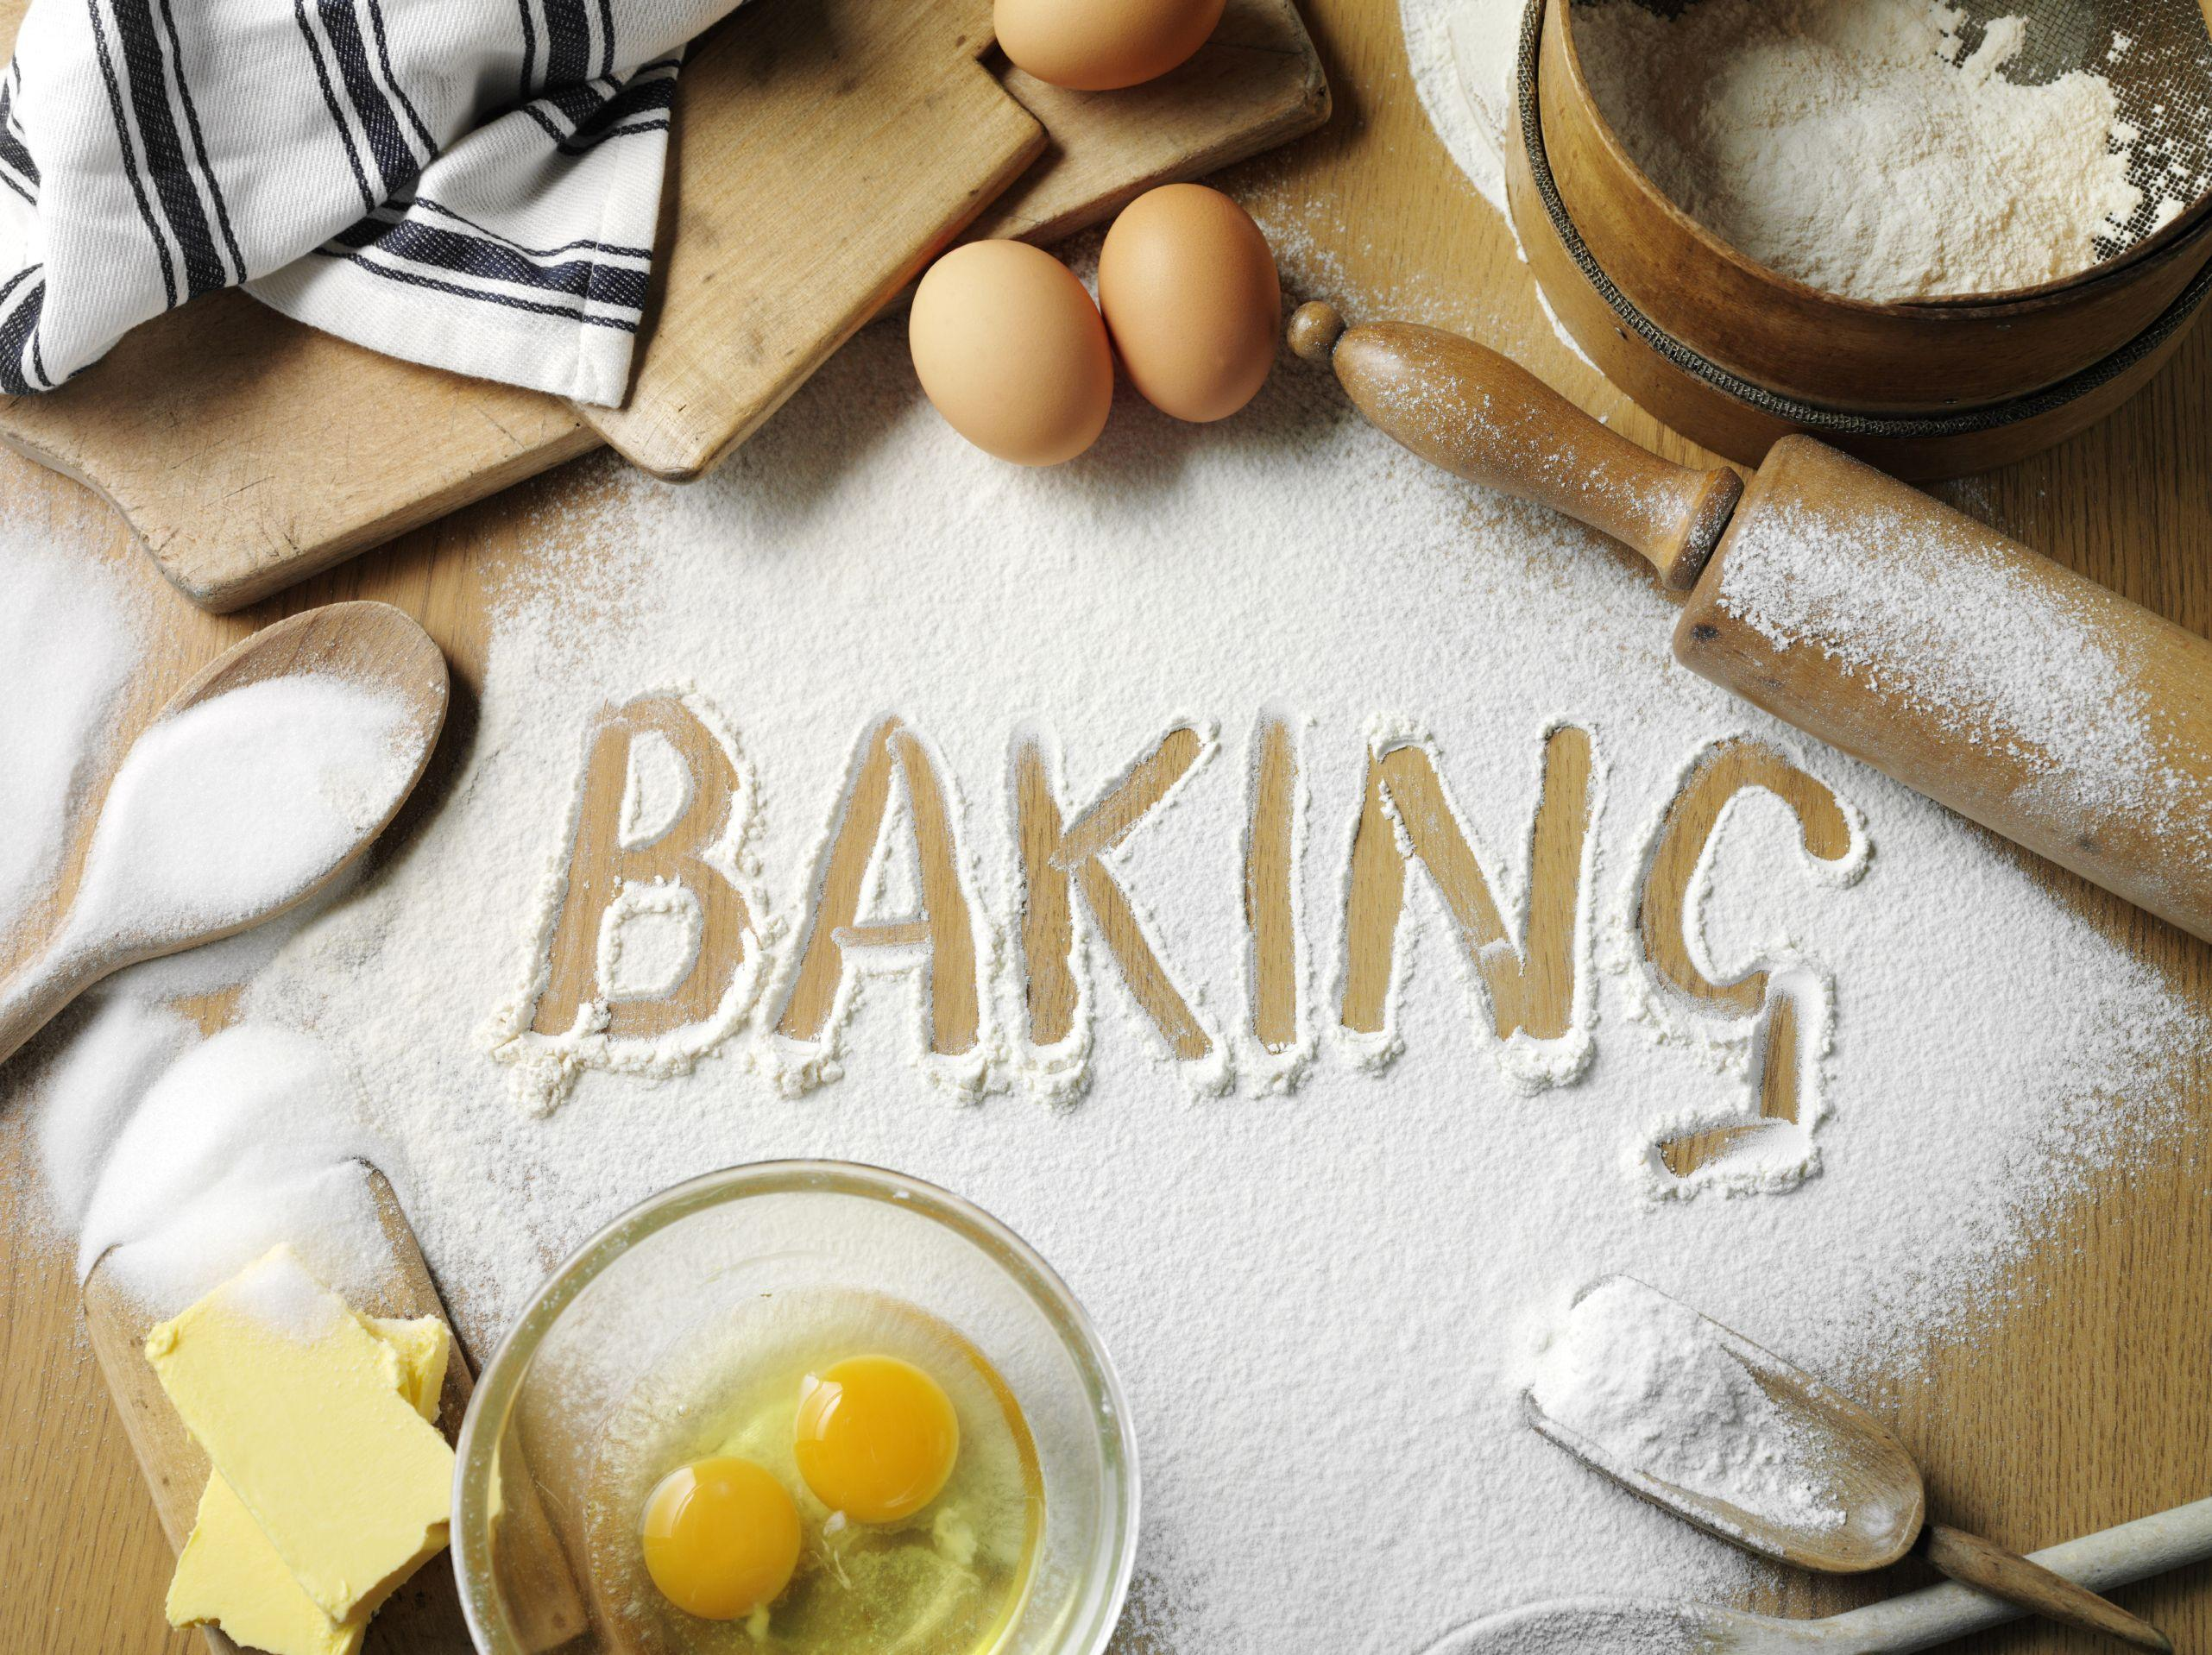 7086x5315px Download Baking HD wallpapers for free 41 #1470140634